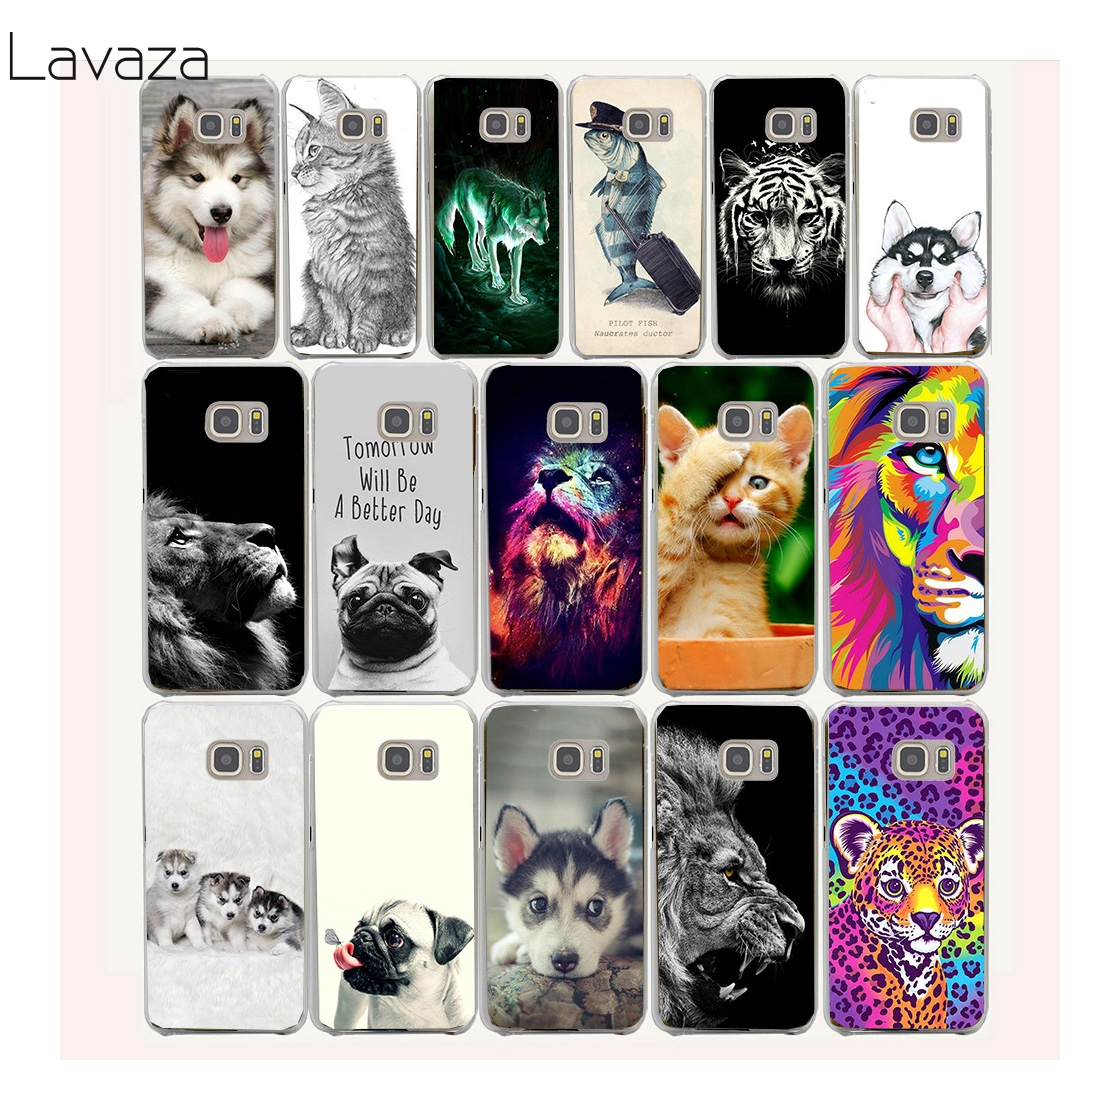 dog and tiger Hard Transparent Case Cover for Galaxy S3 S4 S5 & Mini S6 S7 Edge Plus Case Cover